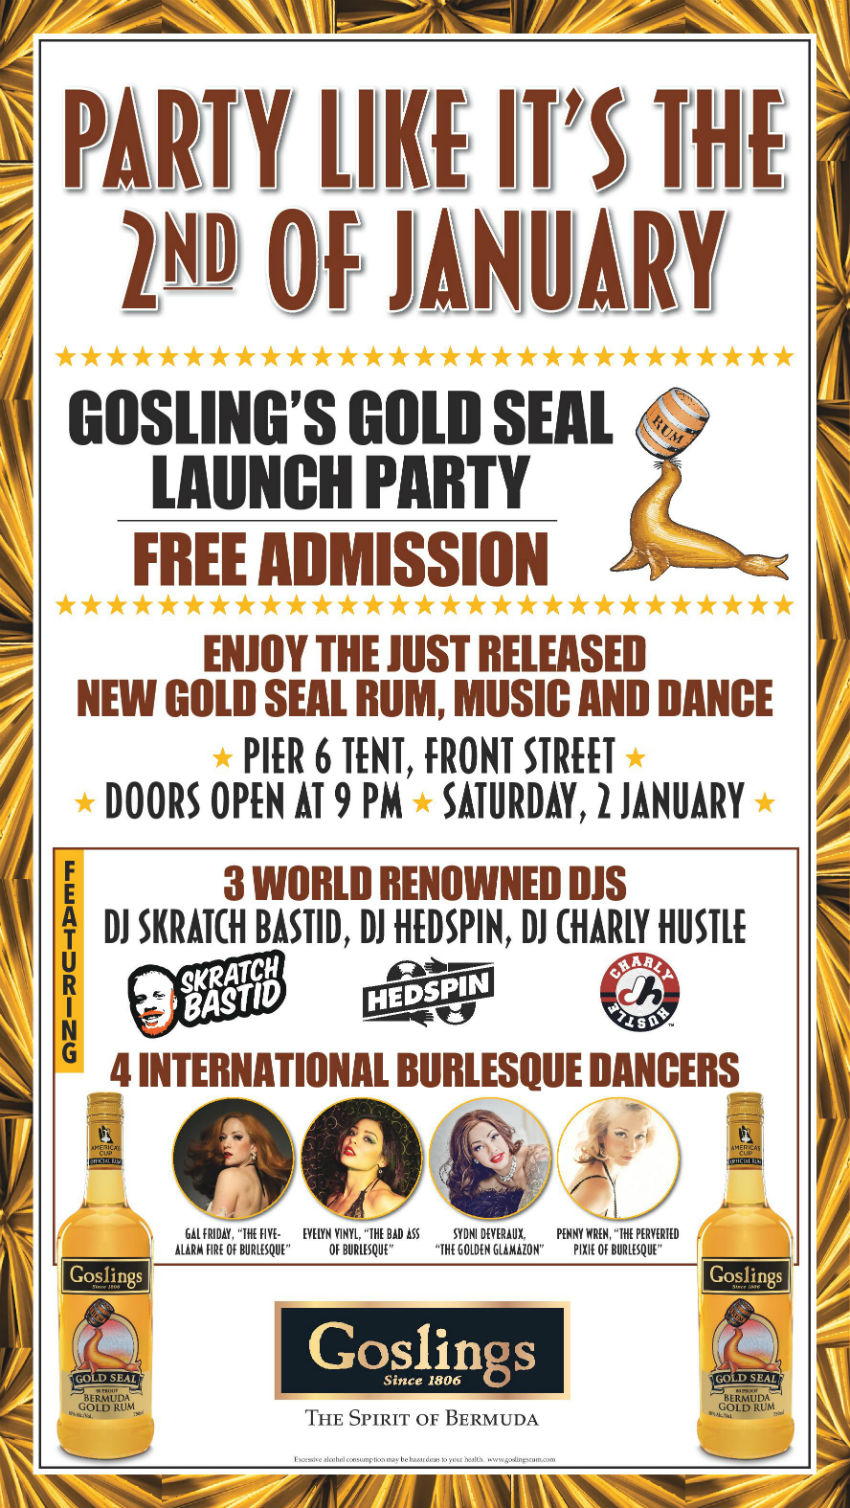 goslings-gold-seal-launch-party-poster